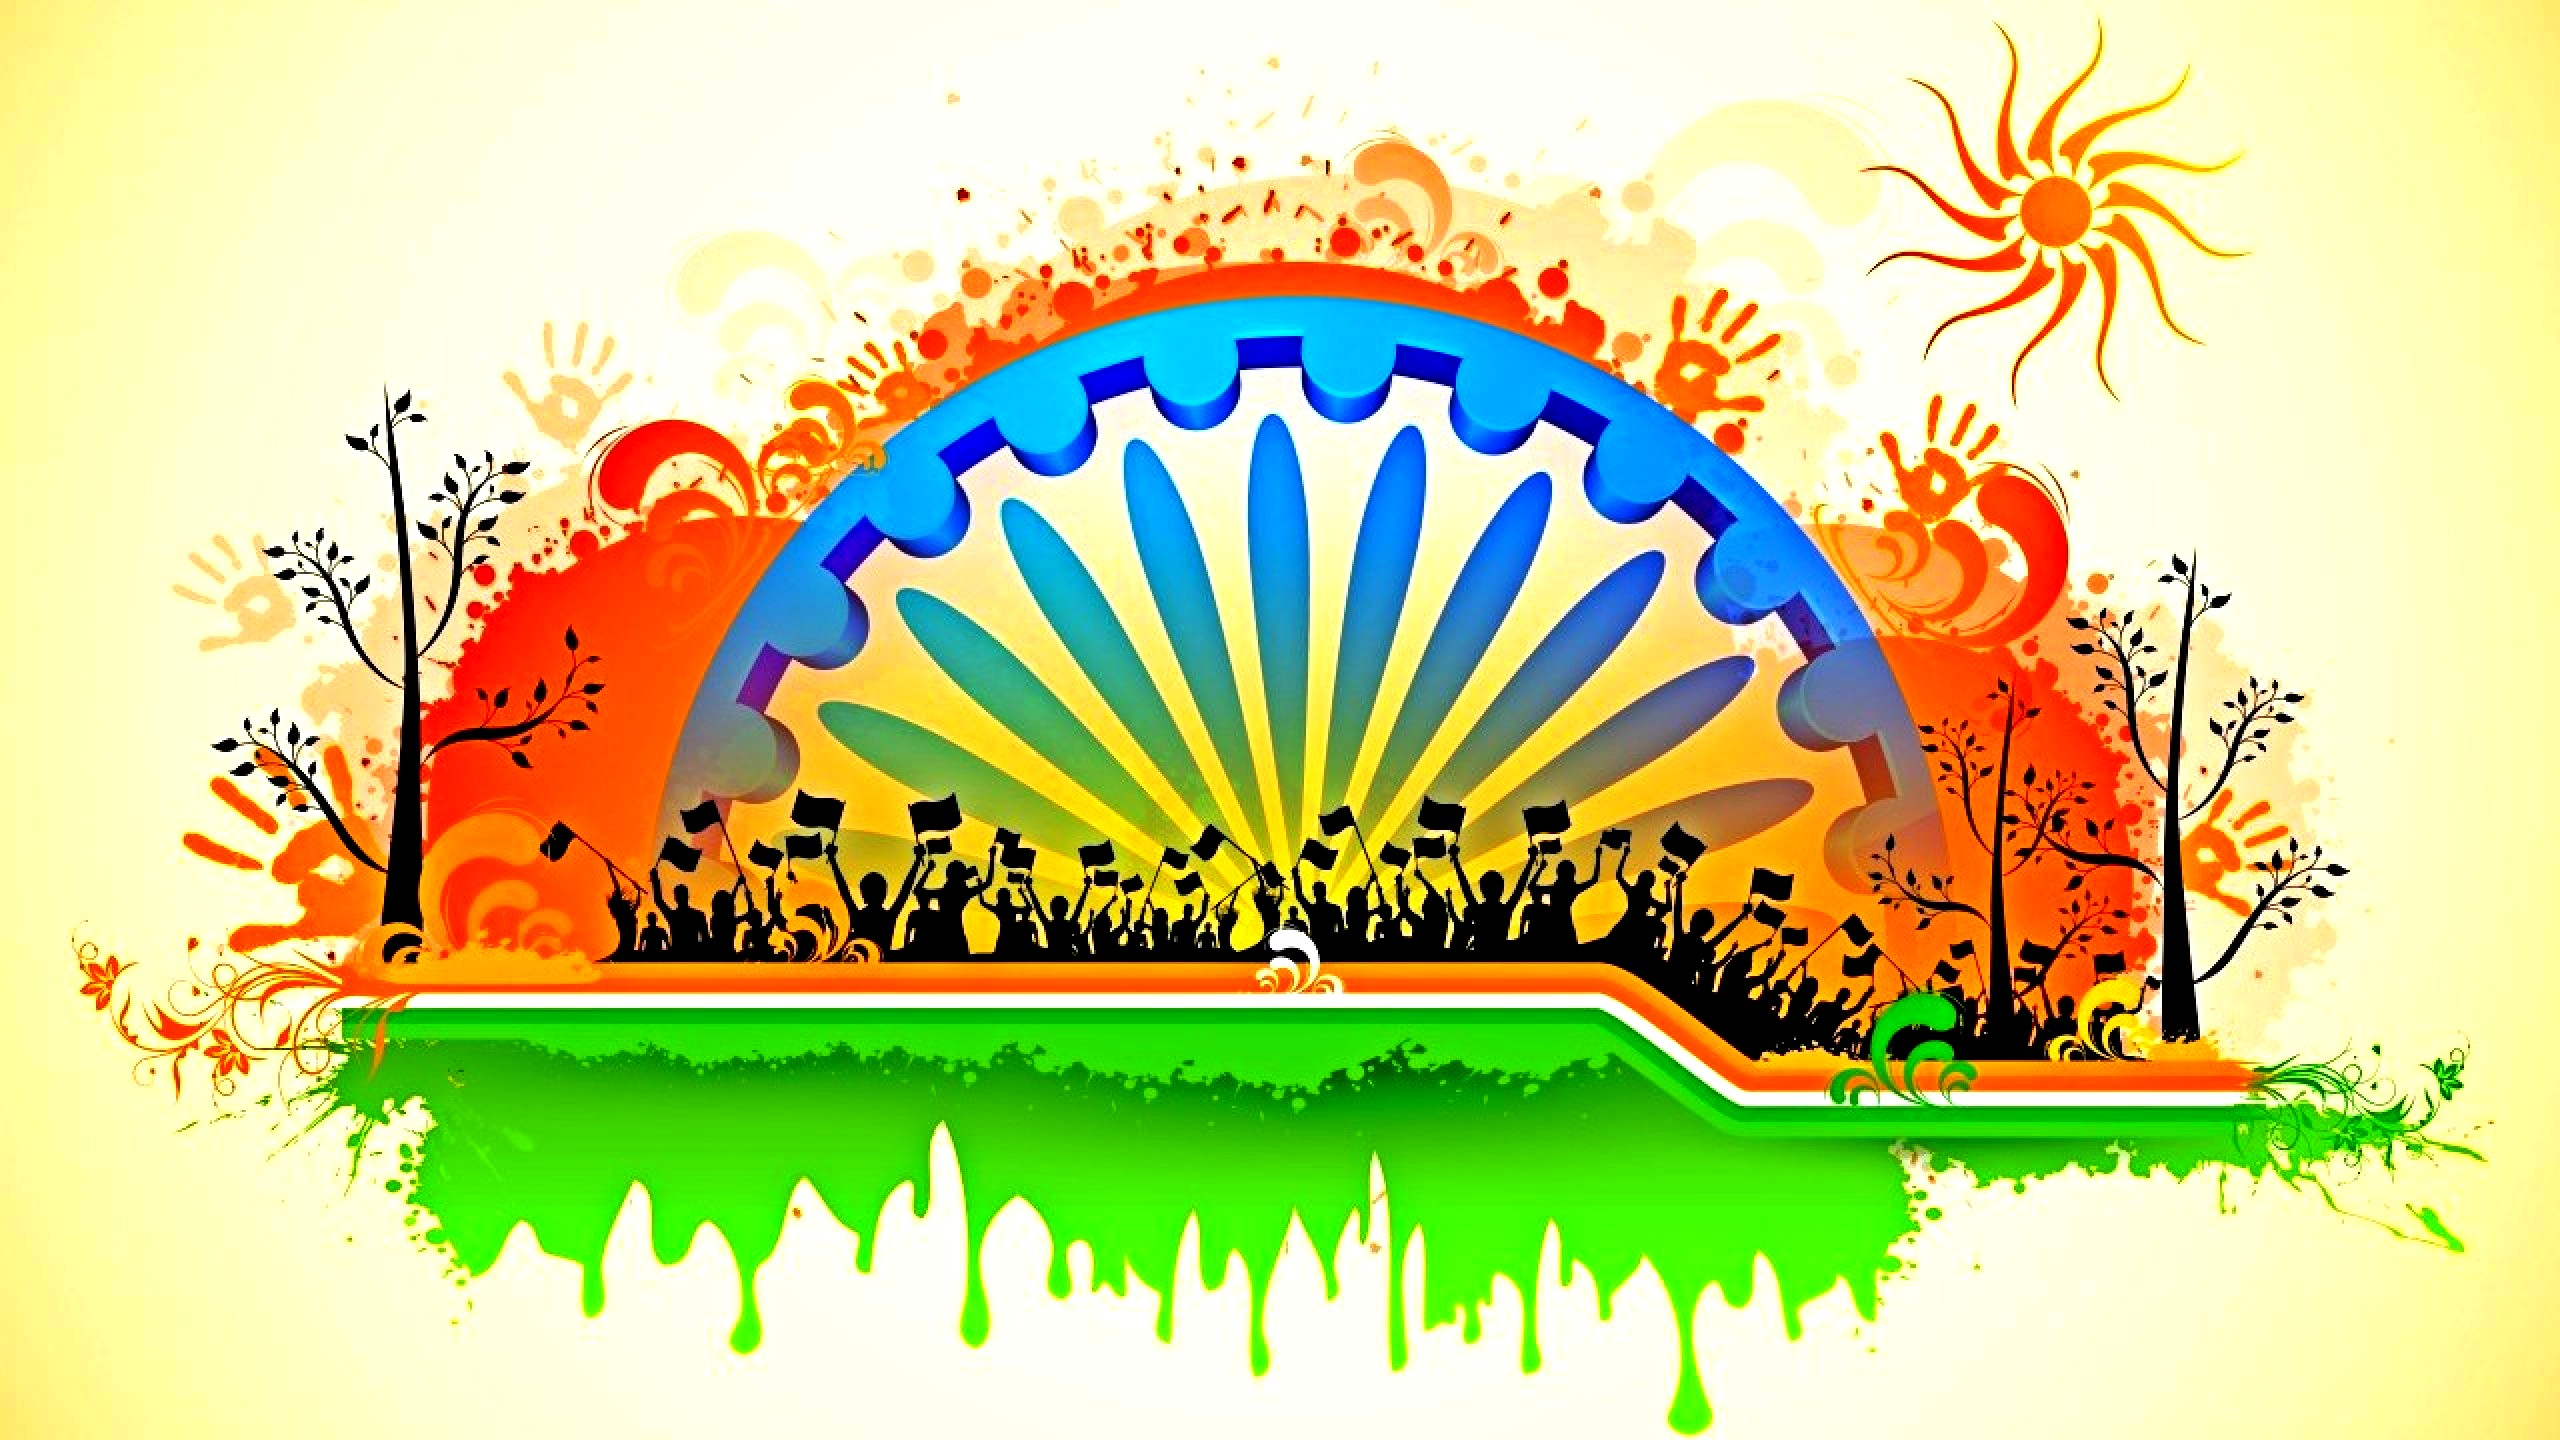 republic day 2018 29 images wishes essay for students history of republic day